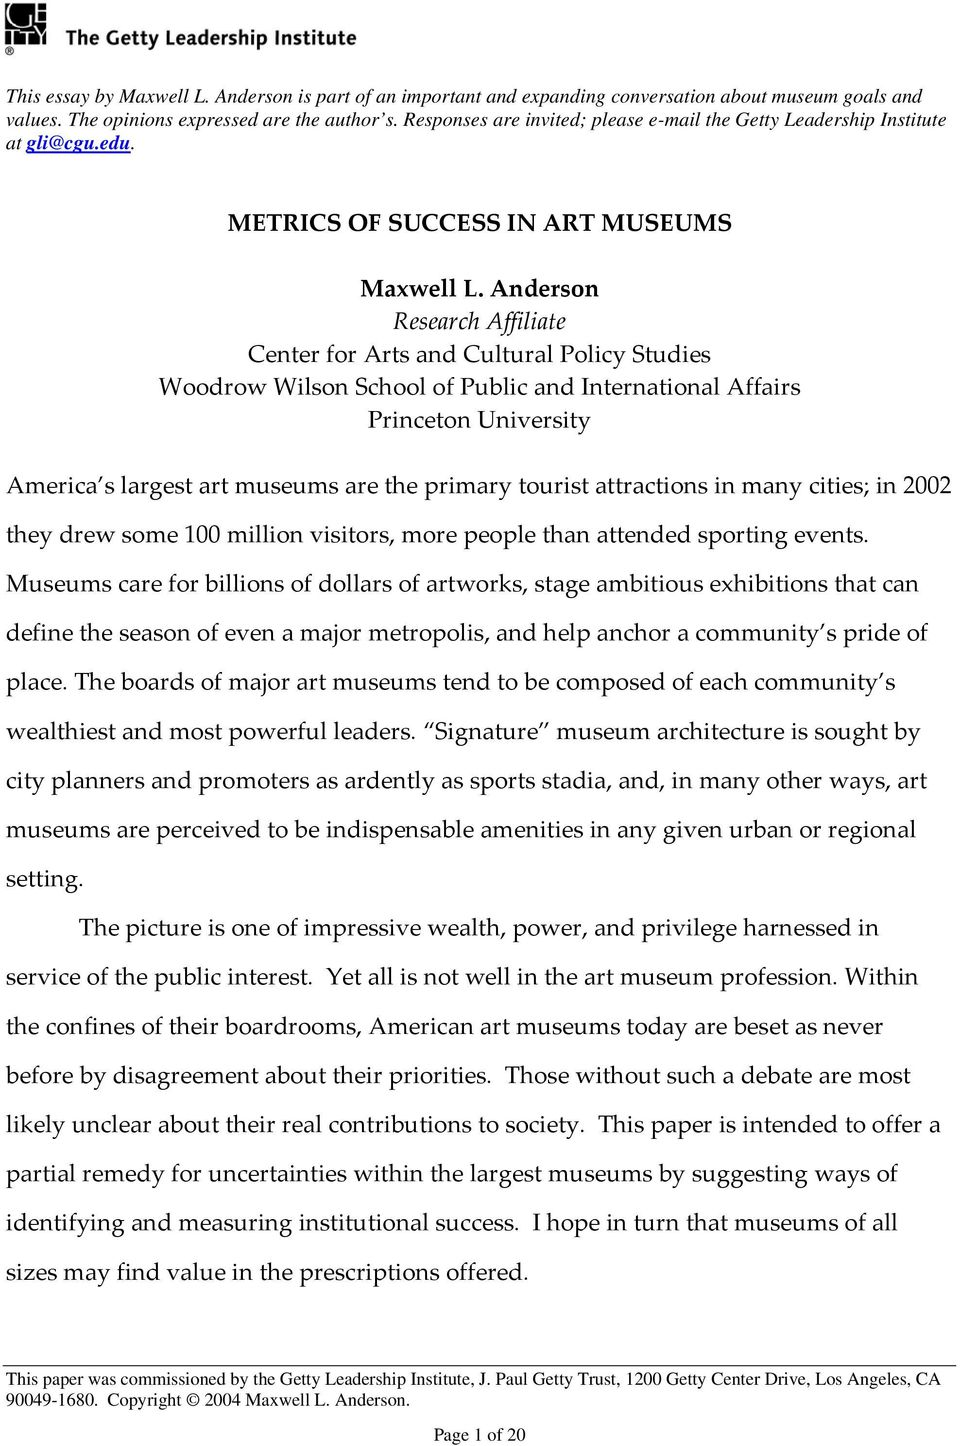 METRICS OF SUCCESS IN ART MUSEUMS Research Affiliate Center for Arts and Cultural Policy Studies Woodrow Wilson School of Public and International Affairs Princeton University America s largest art